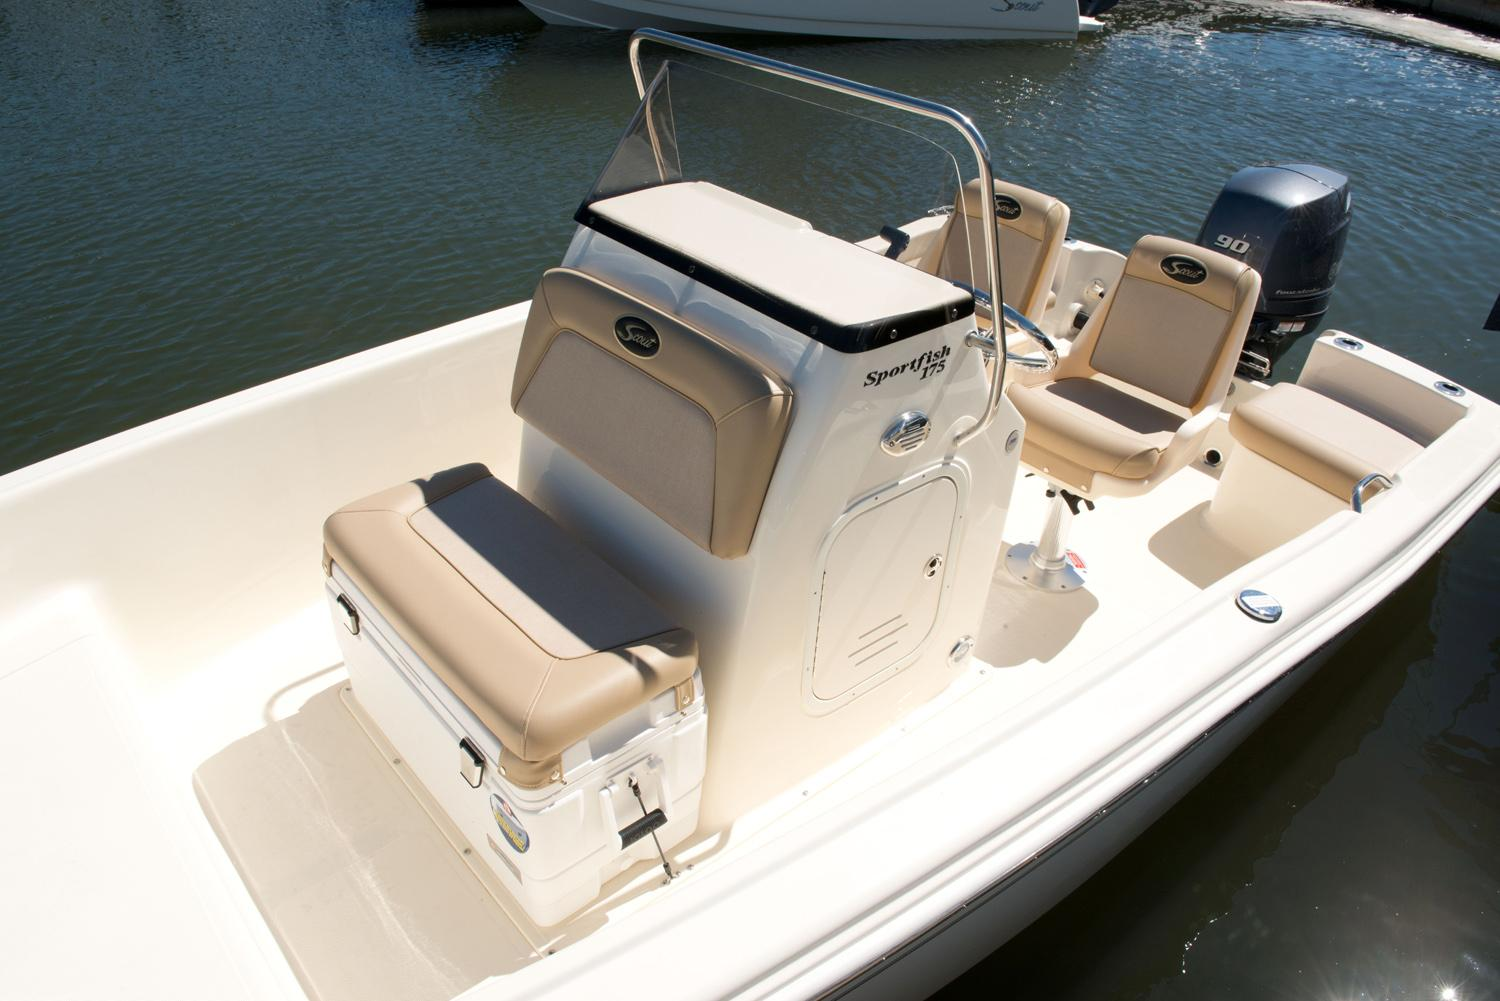 2019 Scout Boats 175 Sportfish in Bridgeport, New York